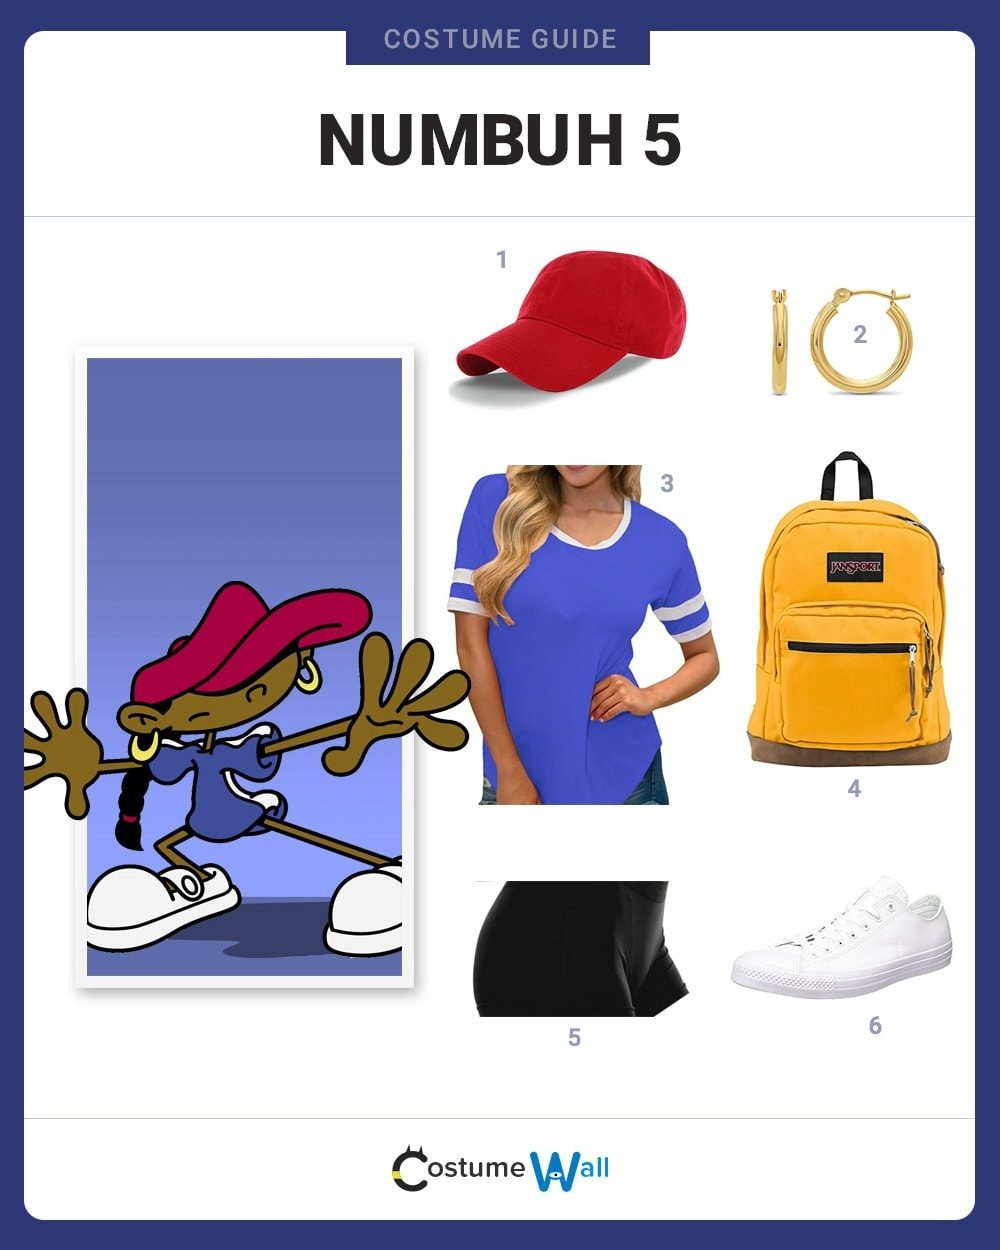 Numbuh 5 Costume Guide